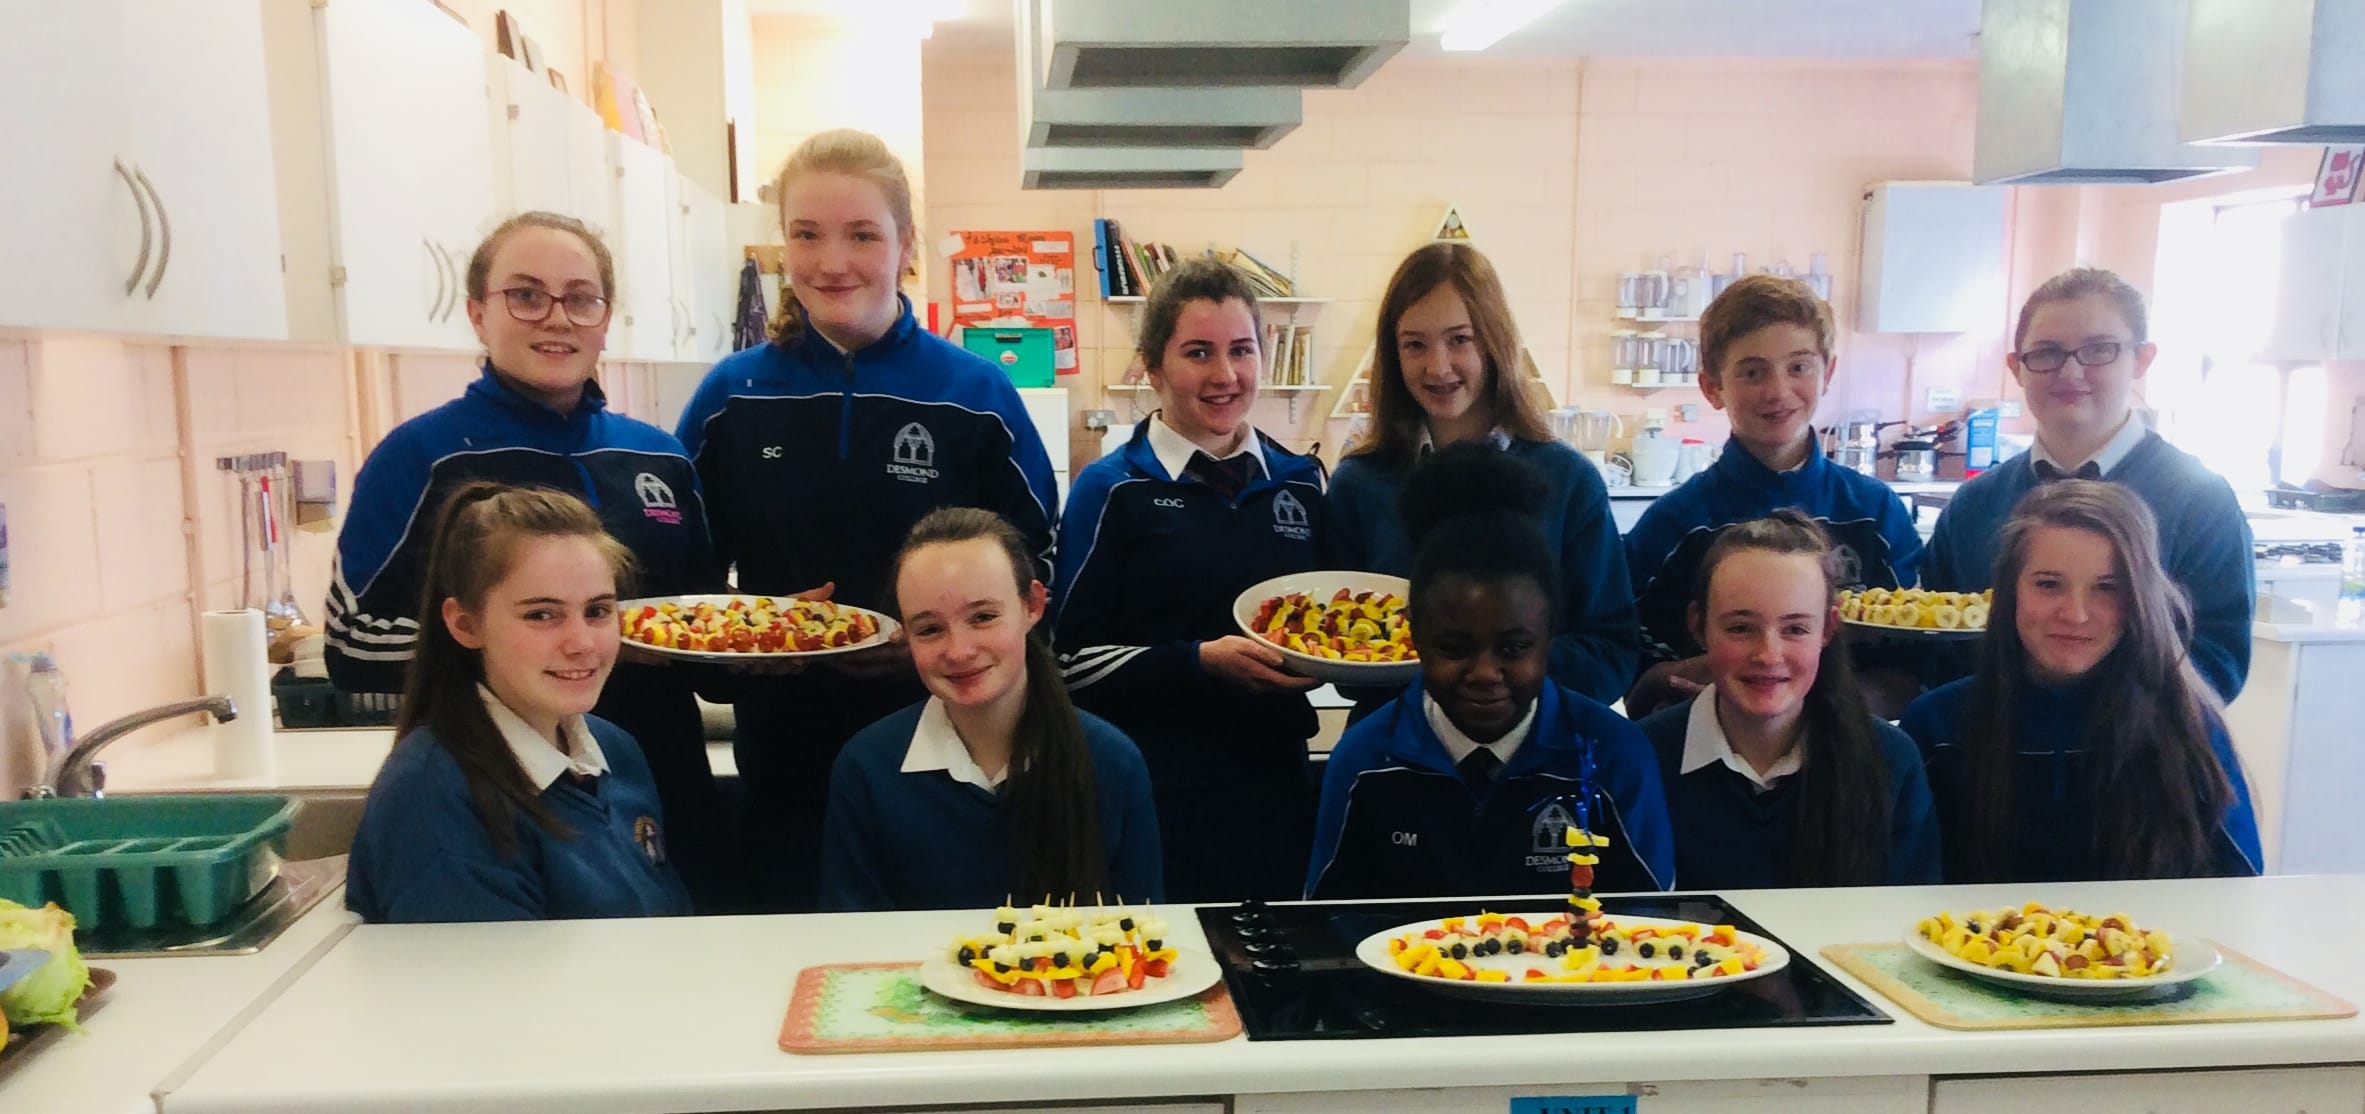 Jan 2018: Desmond College Second Year students preparing fruit kebabs as Part of Healthy Eating Week